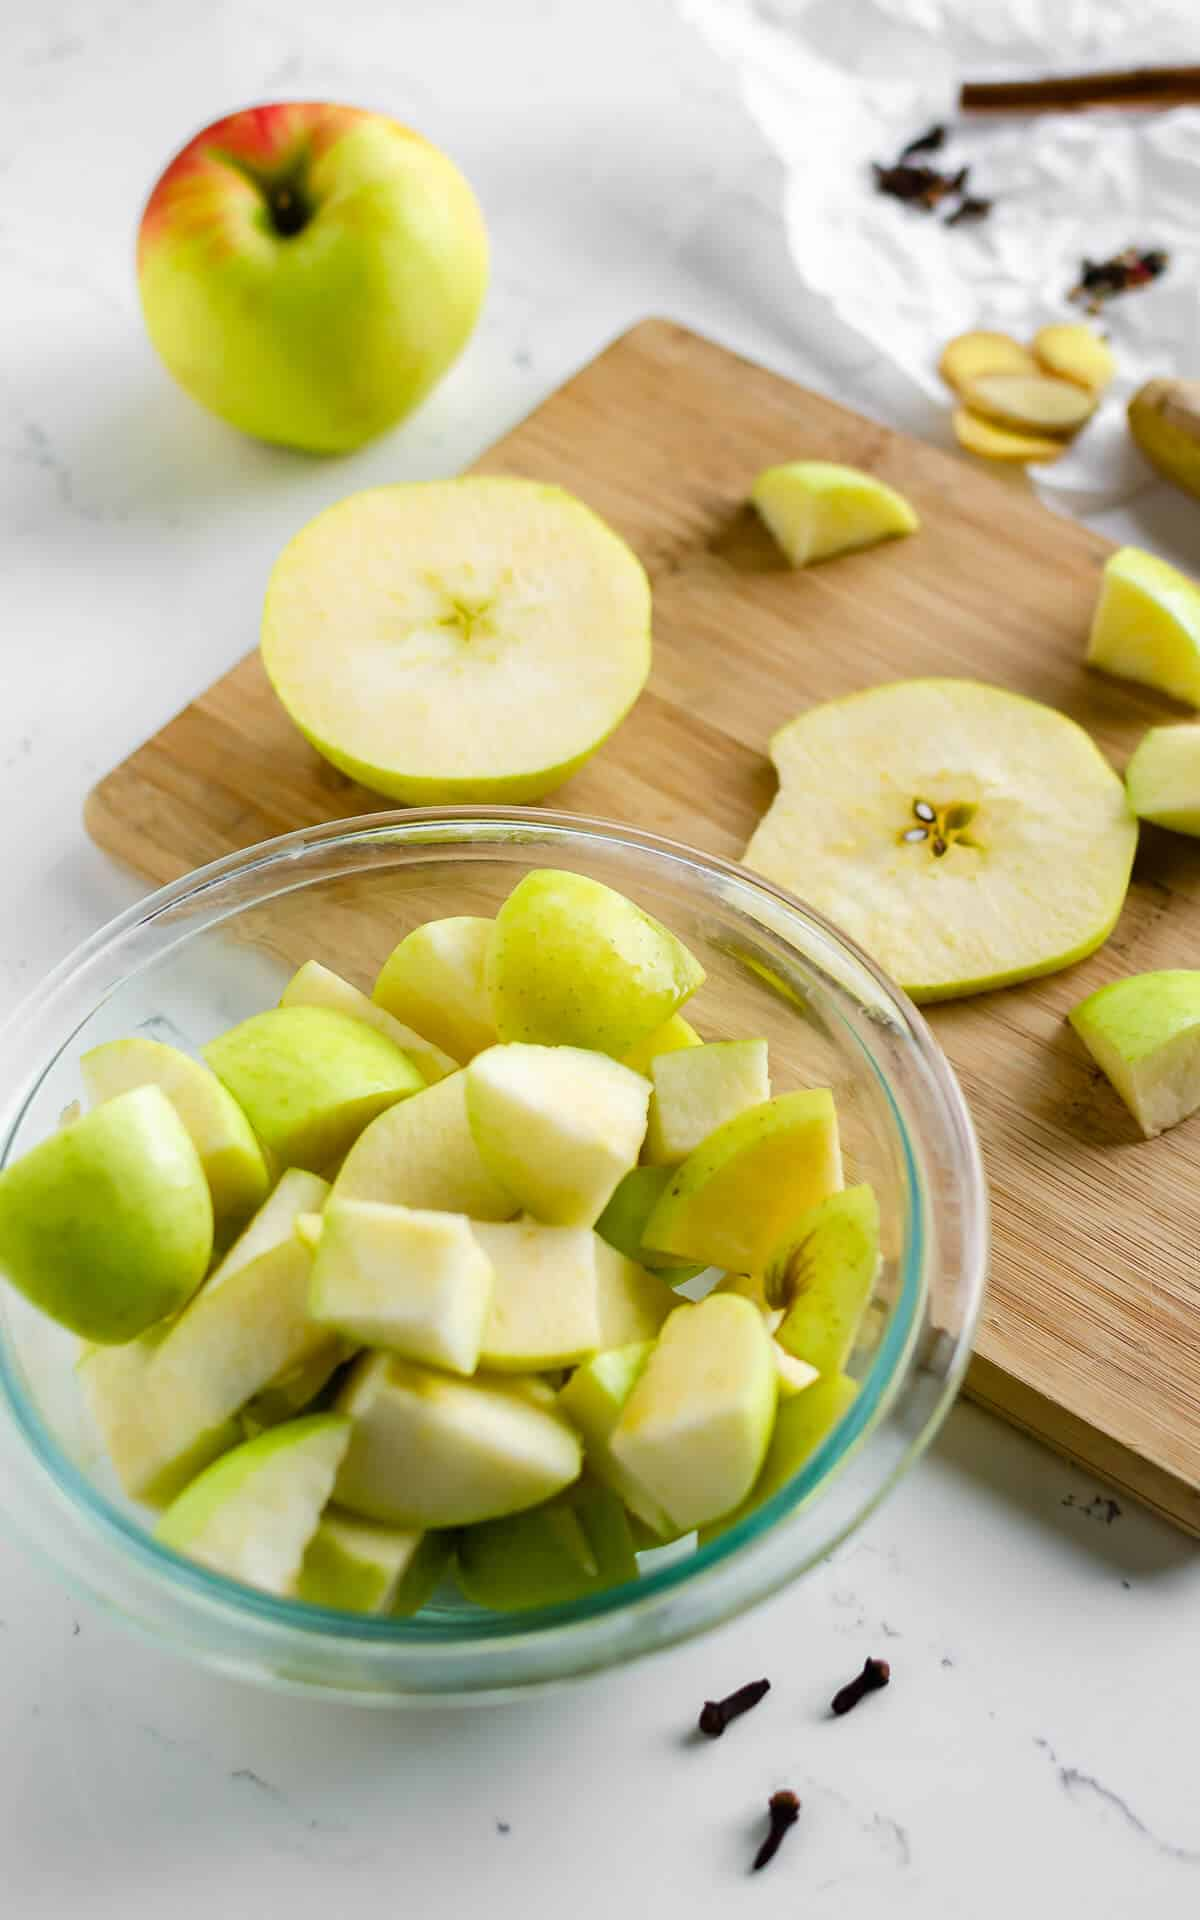 apples cut up into chunks in a large bowl